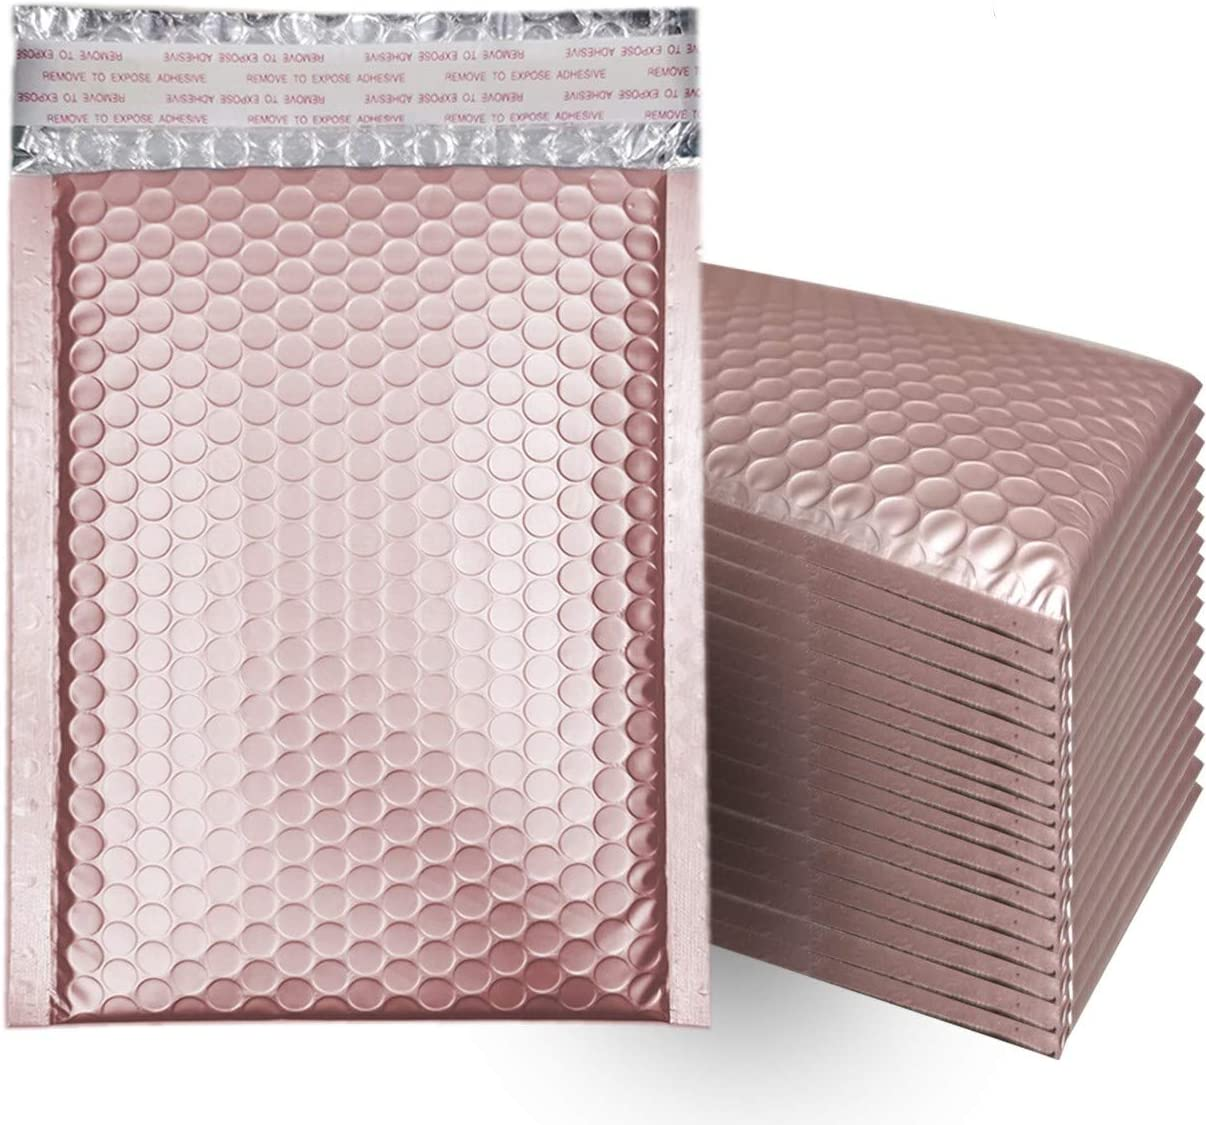 Houston Mall Selling and selling 6x10 Inch Matte Glamour Metallic Mailers Self-seal Bubble Closu